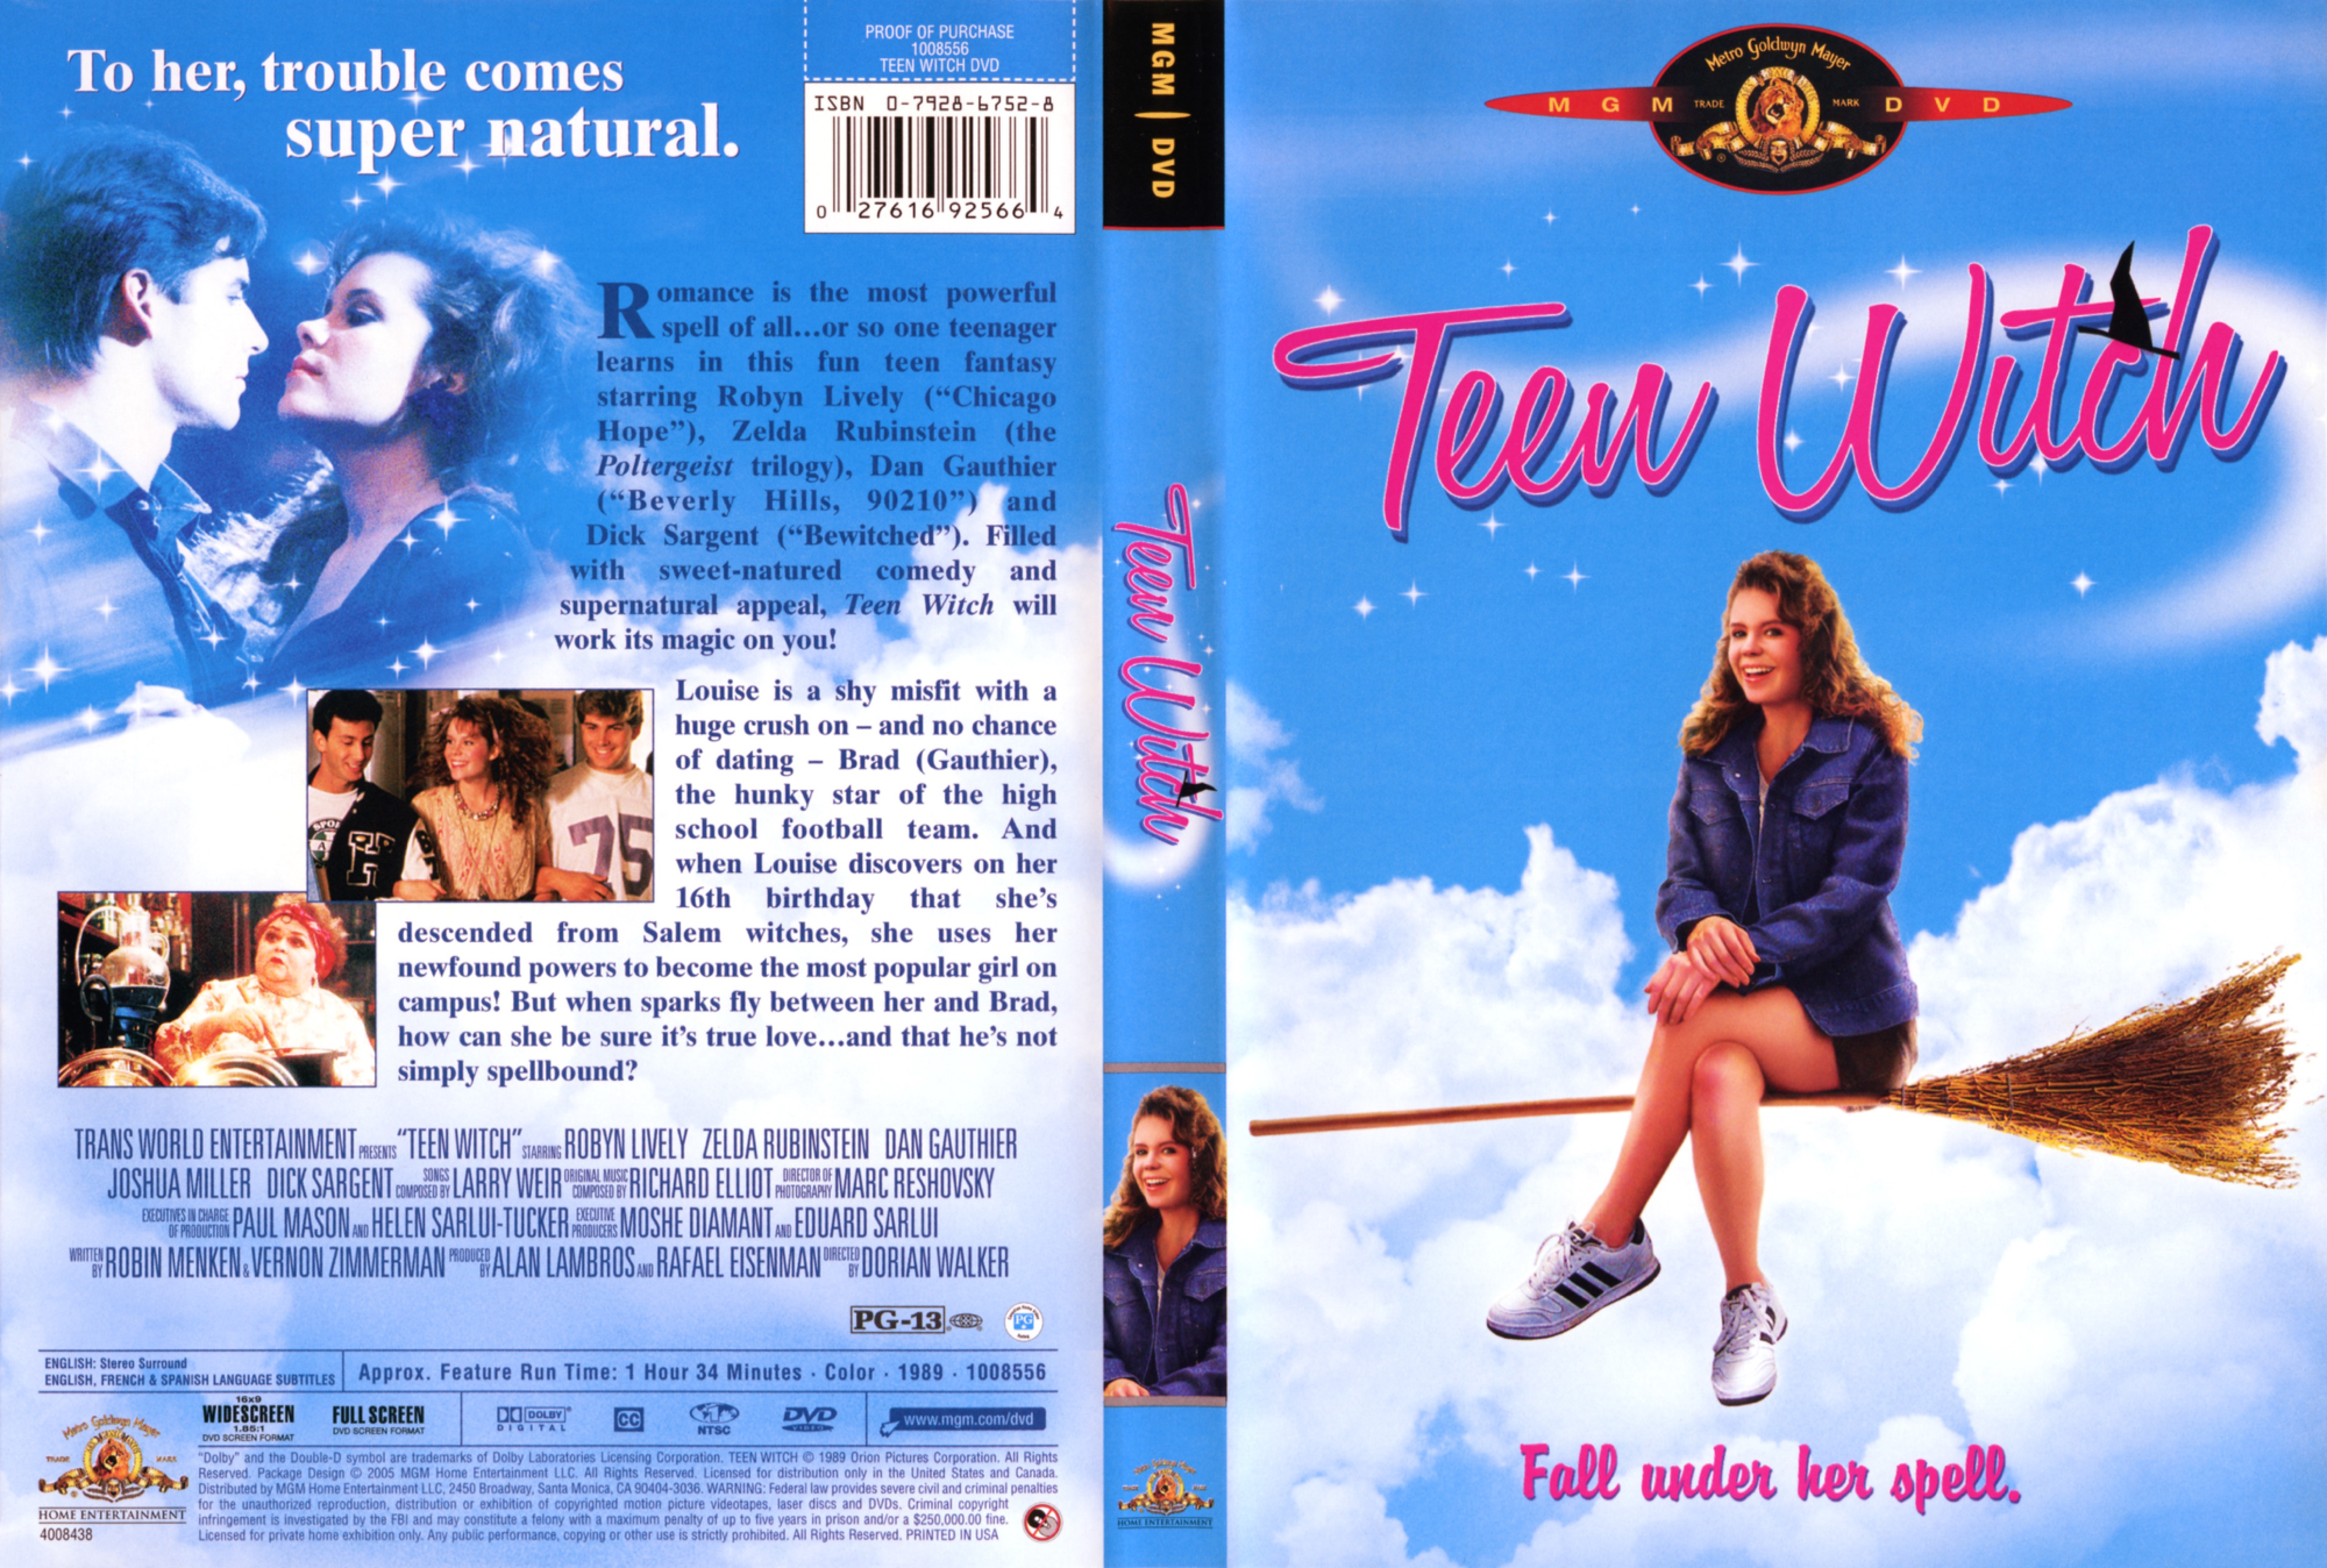 Pudding teen witch movie soundtrack lick movement bible